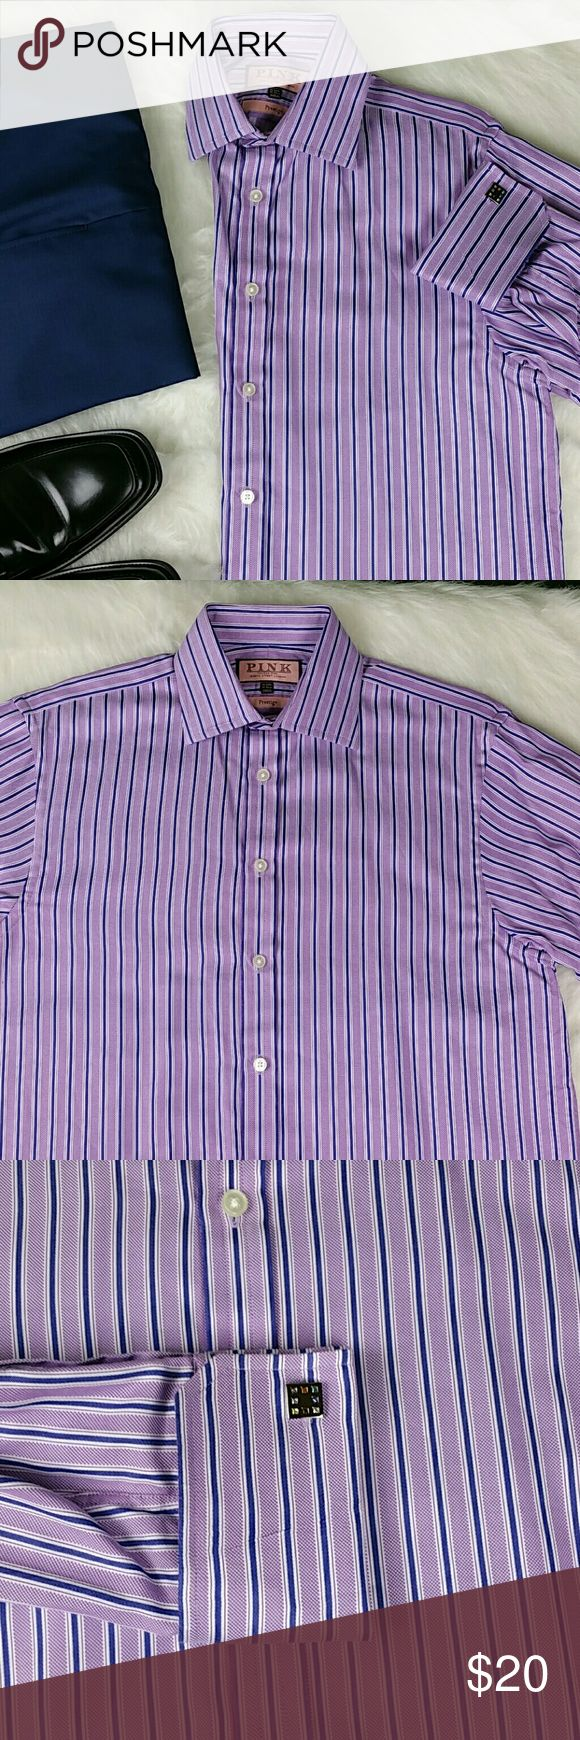 [Thomas Pink] Dress Shirt French Cuffs Stripe Thomas Pink Prestige - Luxury Dress Shirt Pre-owned - gently used Size: 15 Neck Measurements: See Photo #7 Material: 100% Cotton Does Not Come with Cuff Links Thomas Pink Shirts Dress Shirts